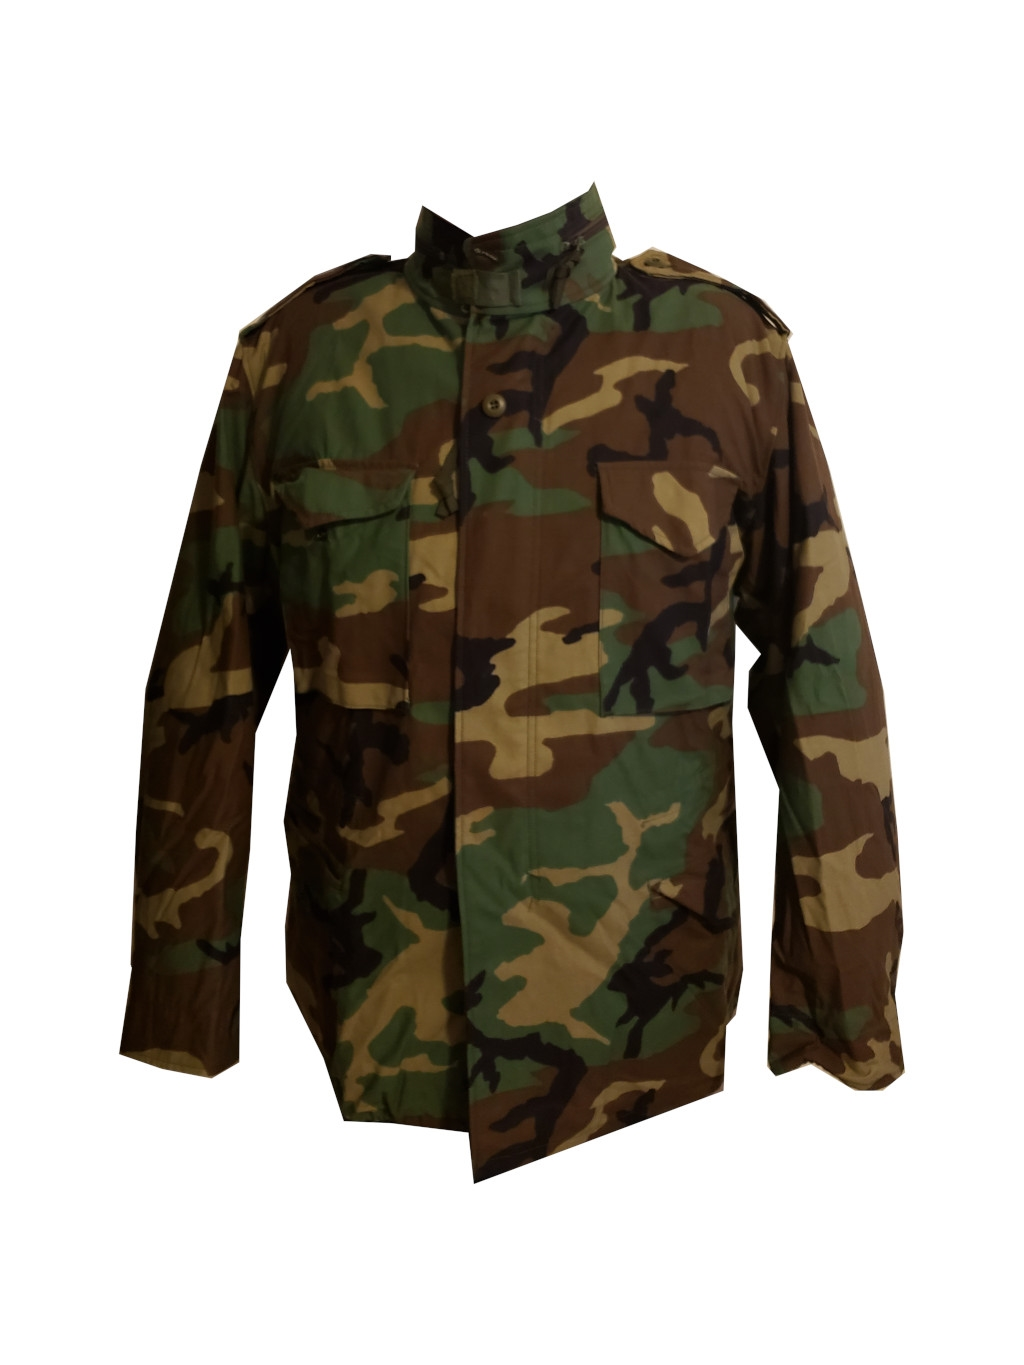 Cold Weather Field Jacket - BDU - Woodland